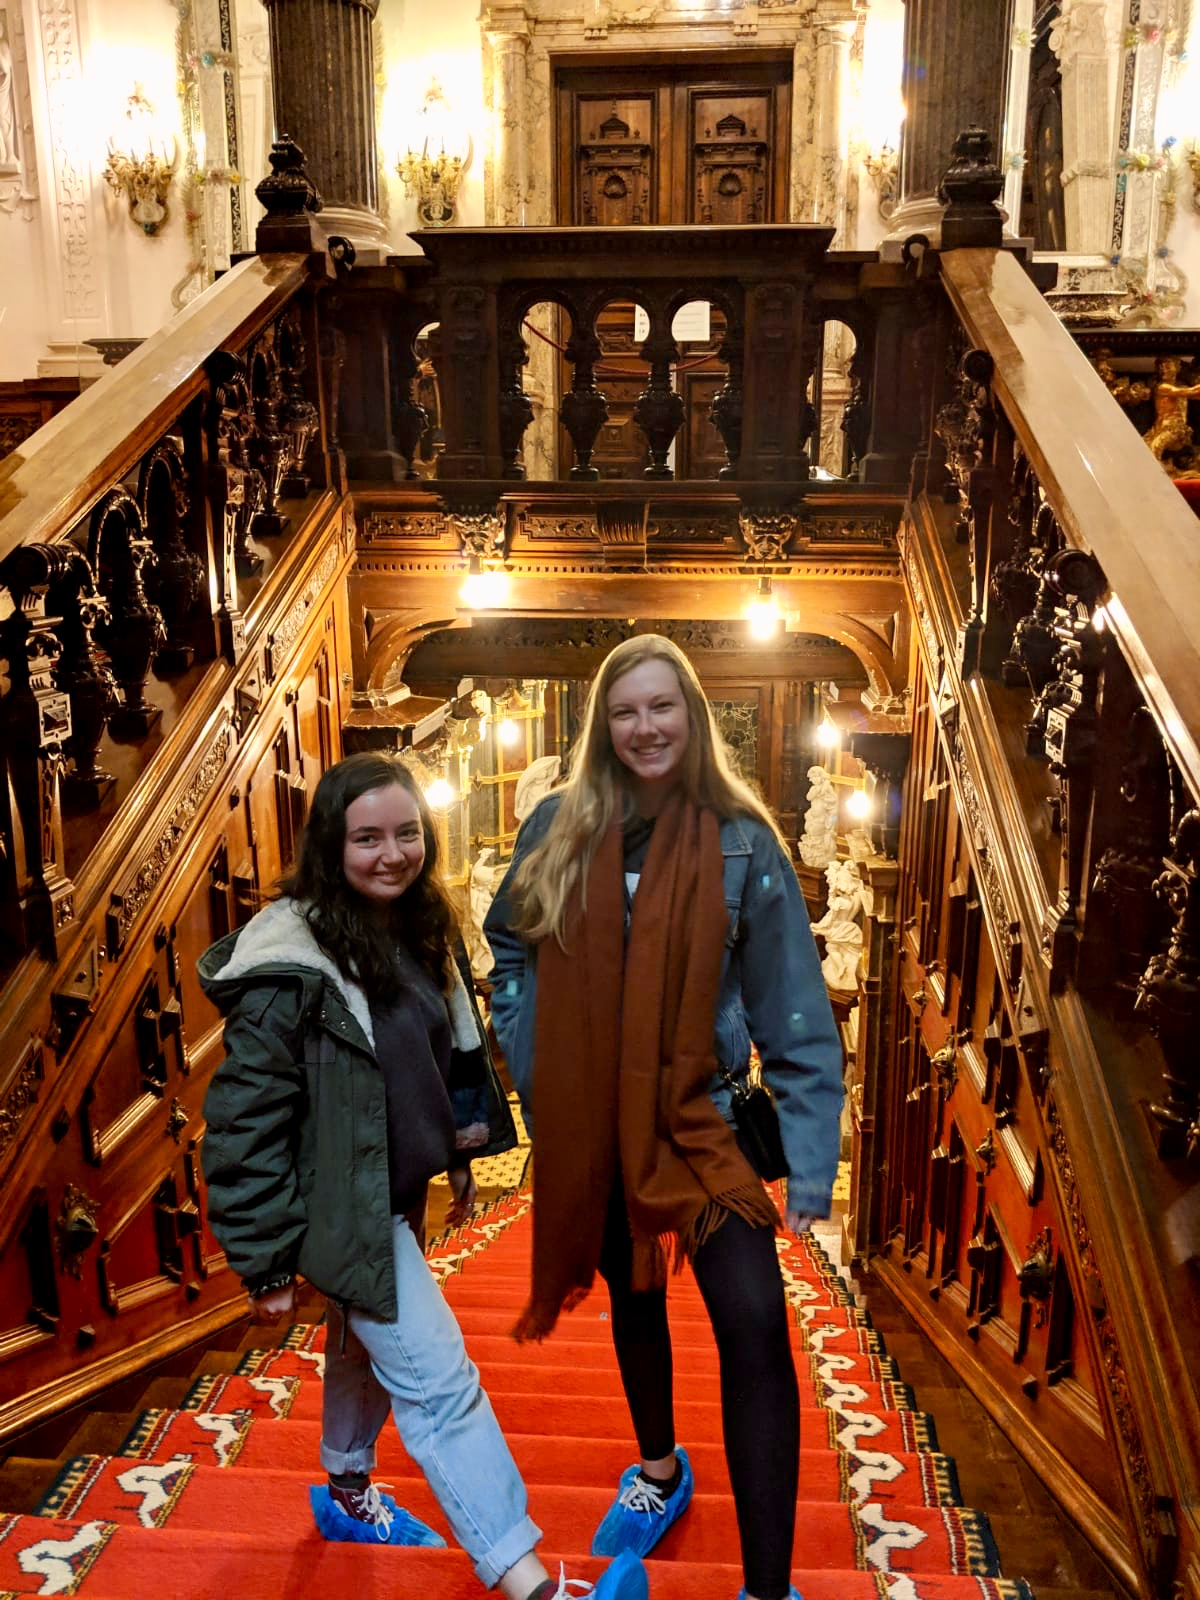 Jasmine and her friend wearing blue shoe covers inside the very ornate castle.